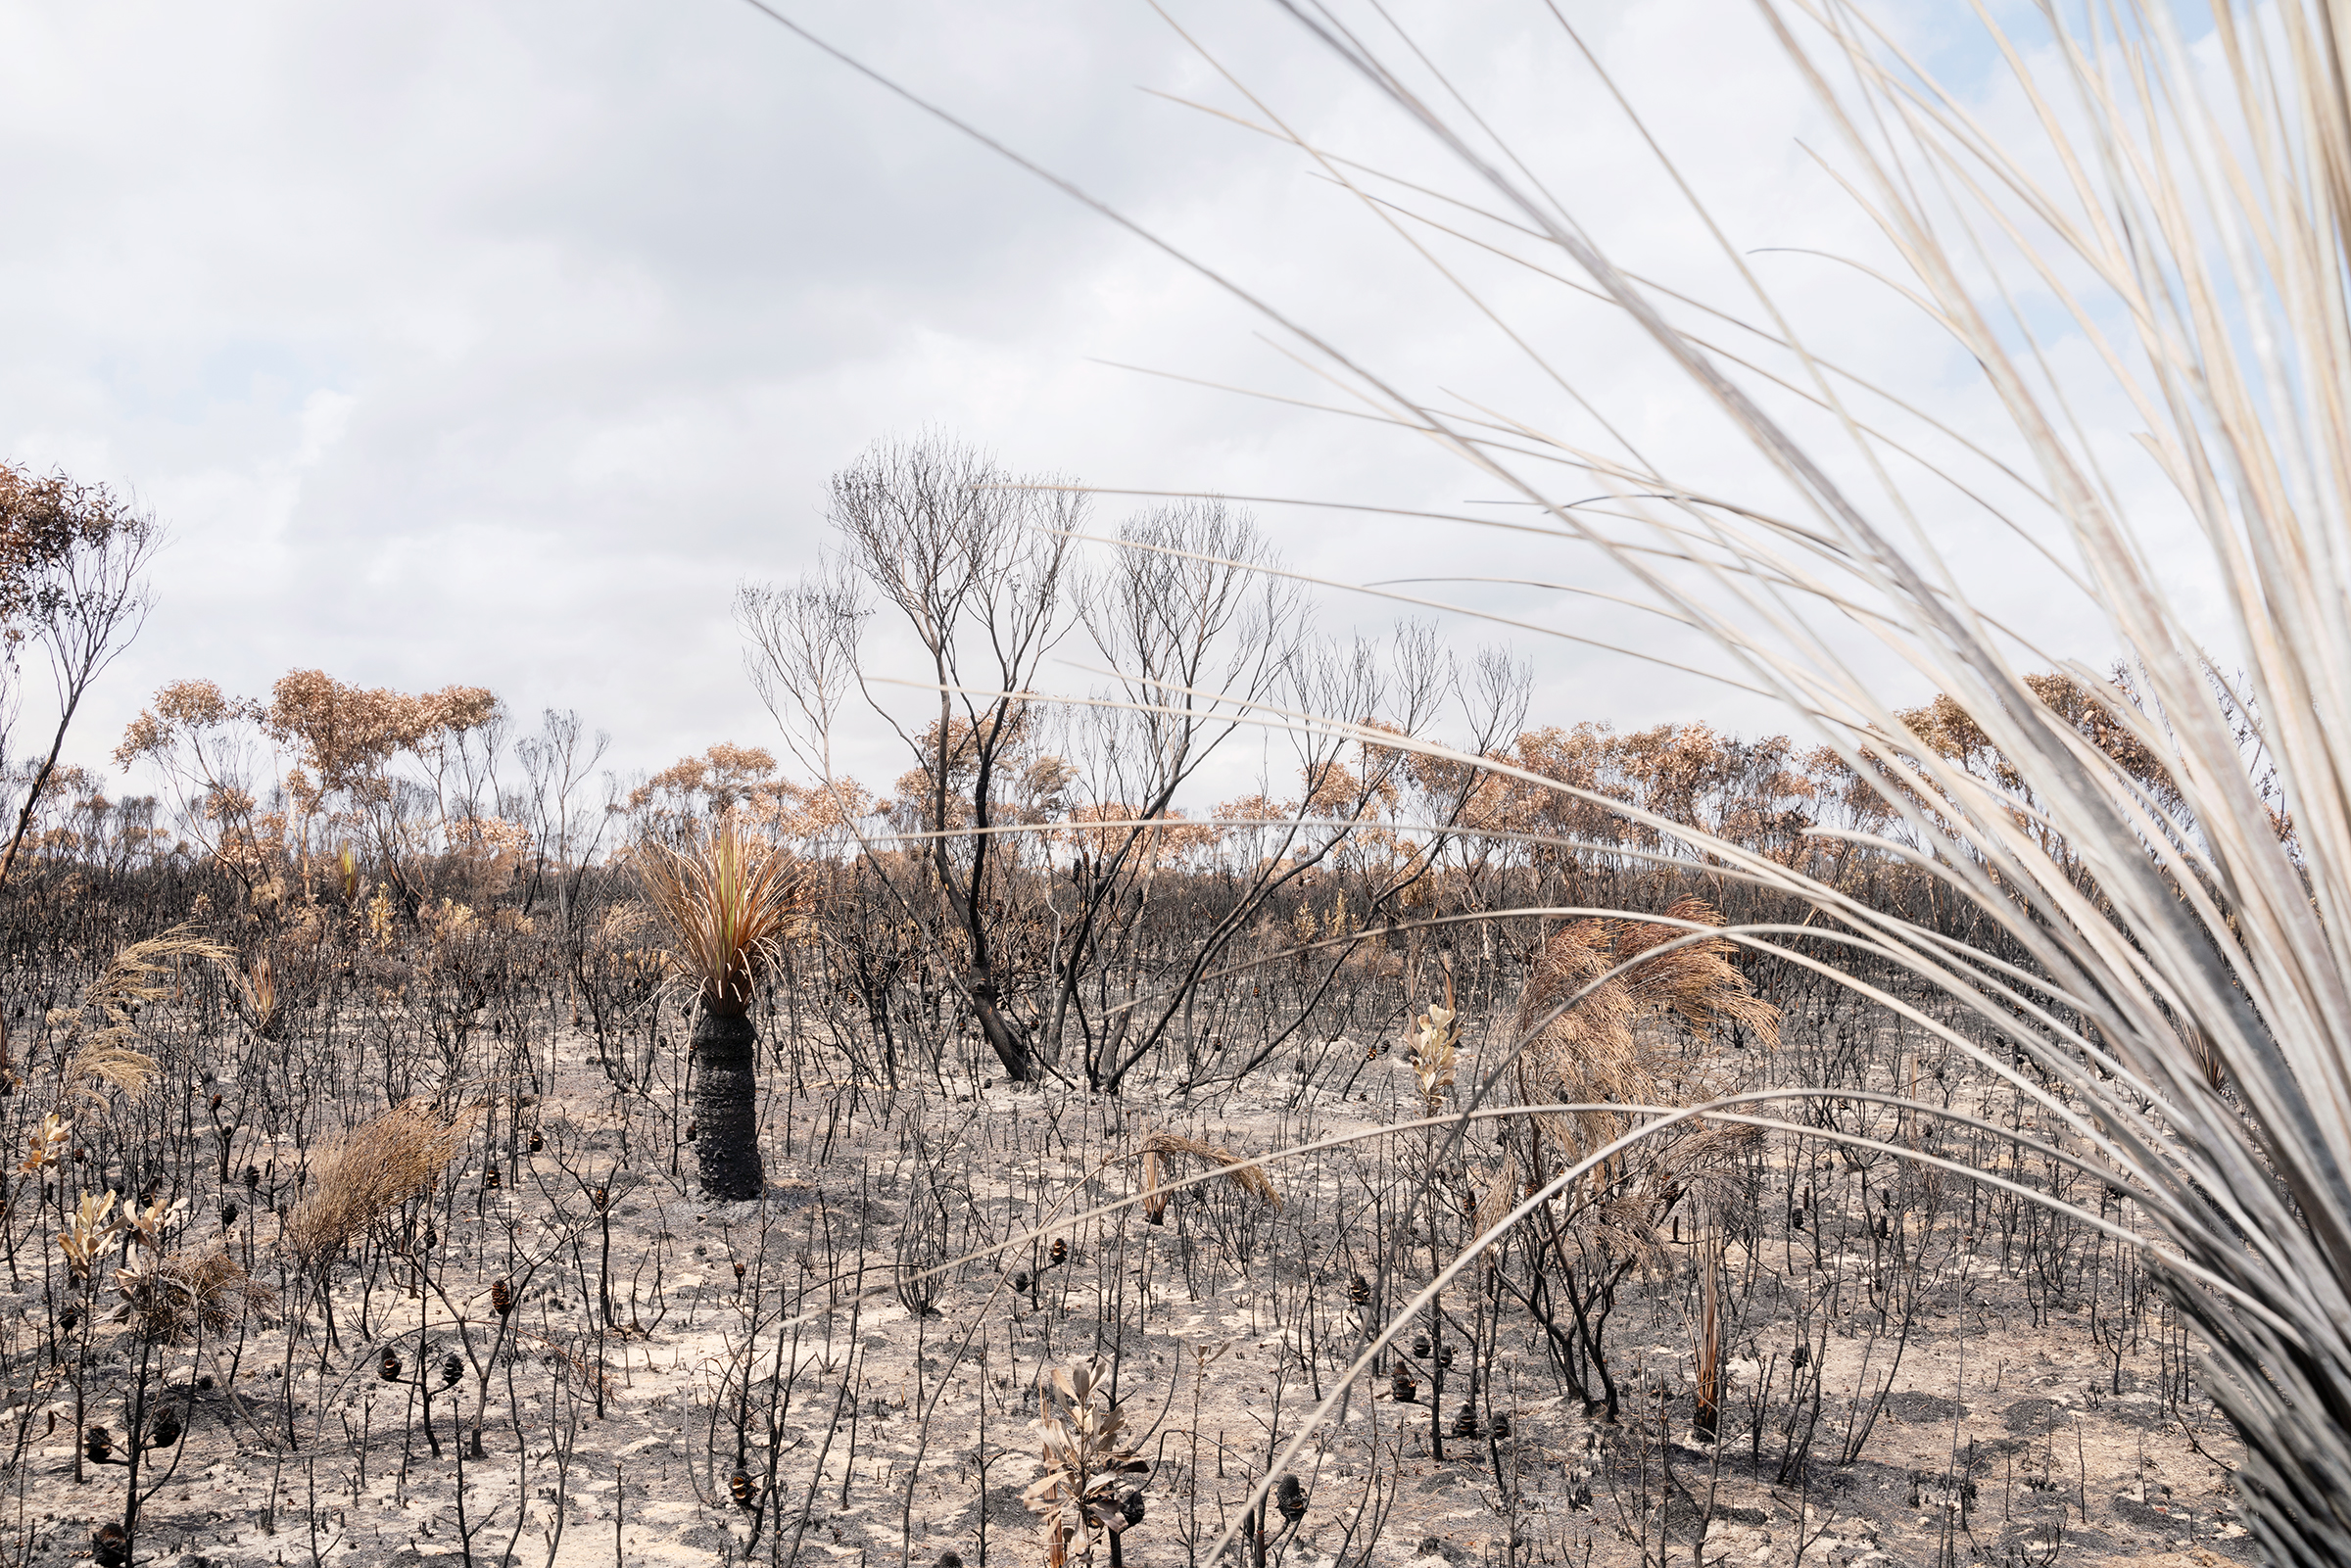 Charred remains of trees in Flinders Chase National Park on Kangaroo Island on Jan. 16.